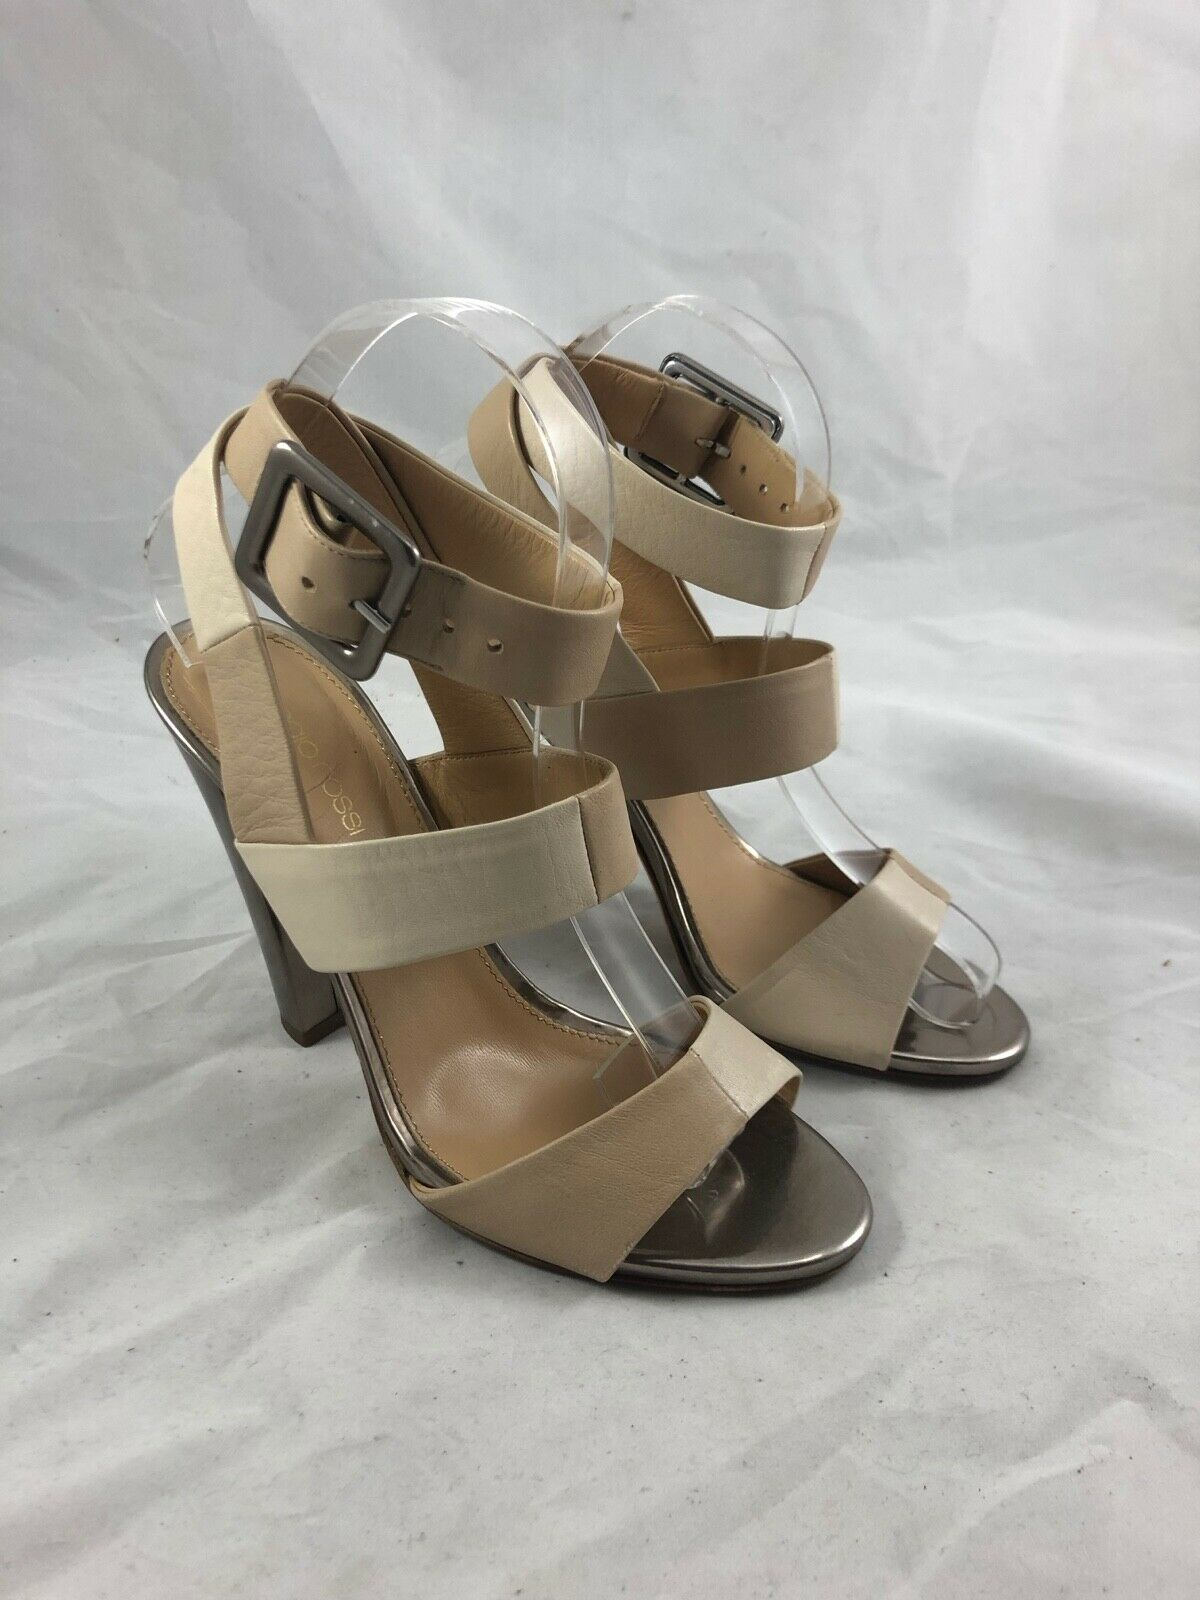 Sergio Rossi Two Tone Leather Ankle Wrap Sandal in Tan Nude Size 37